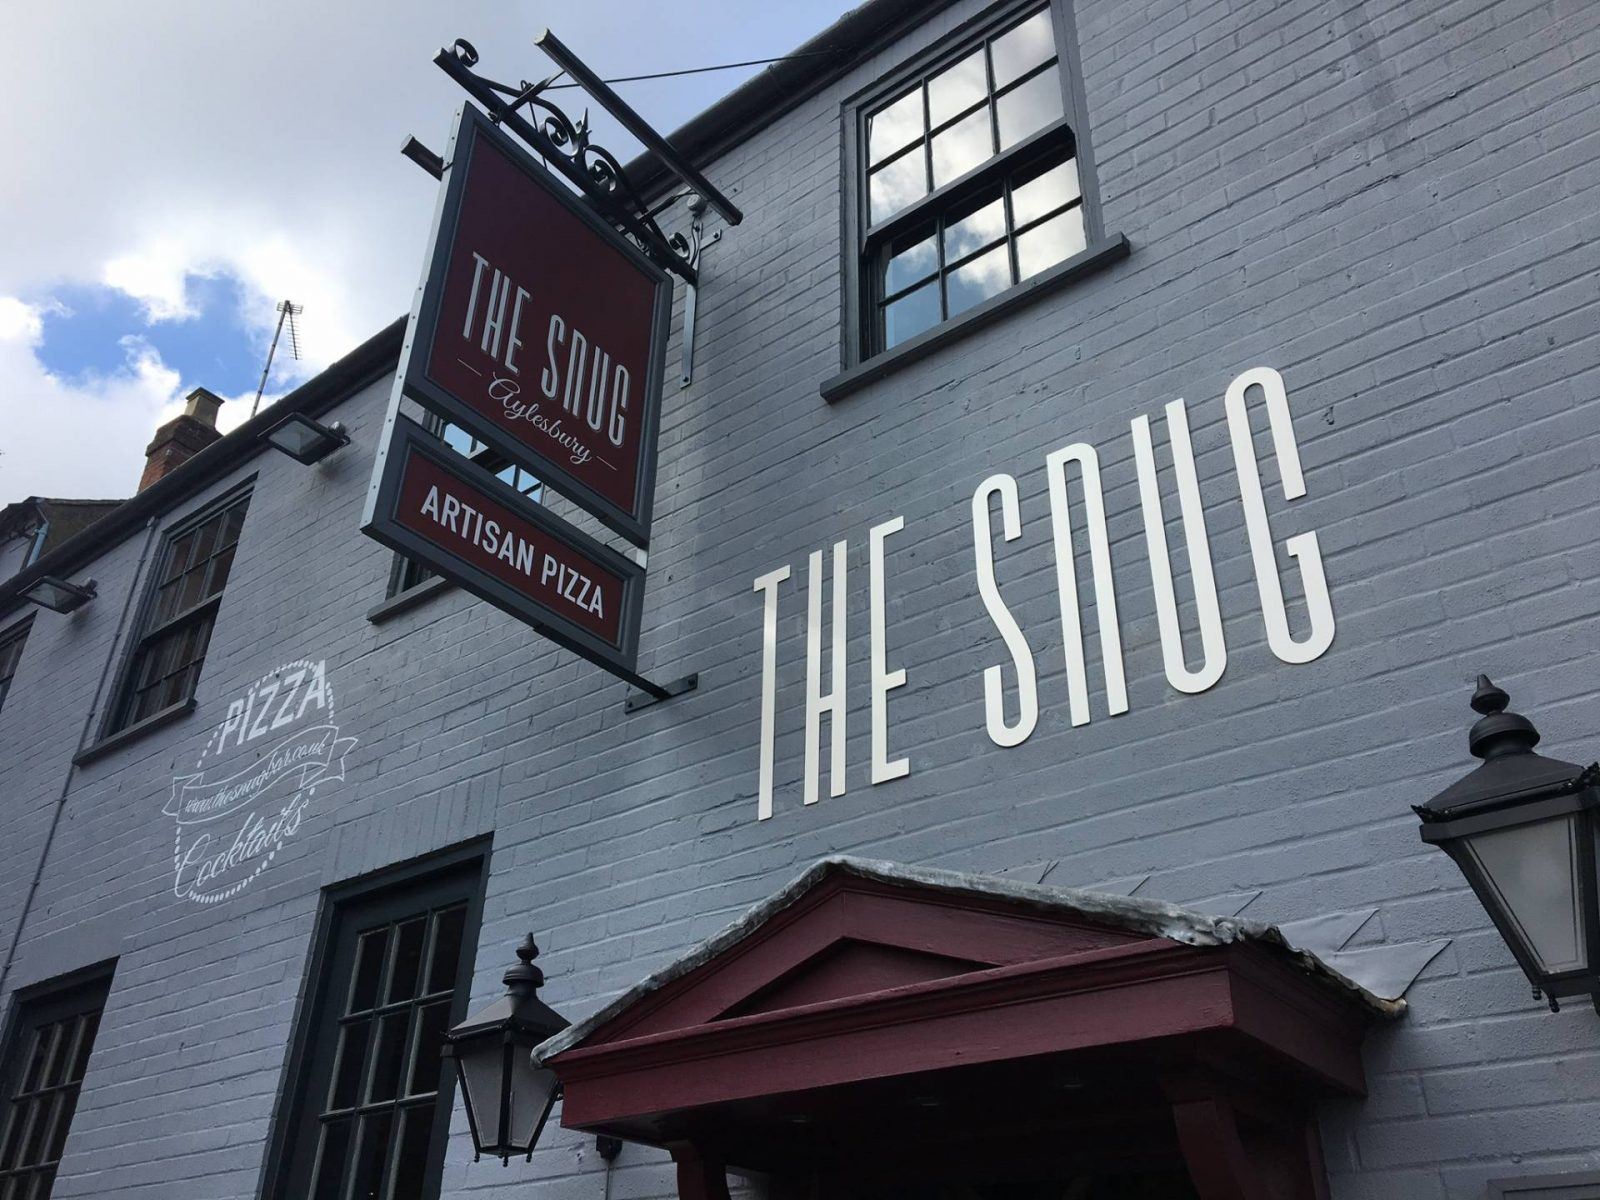 A Day Time Day At The Snug Restaurant…